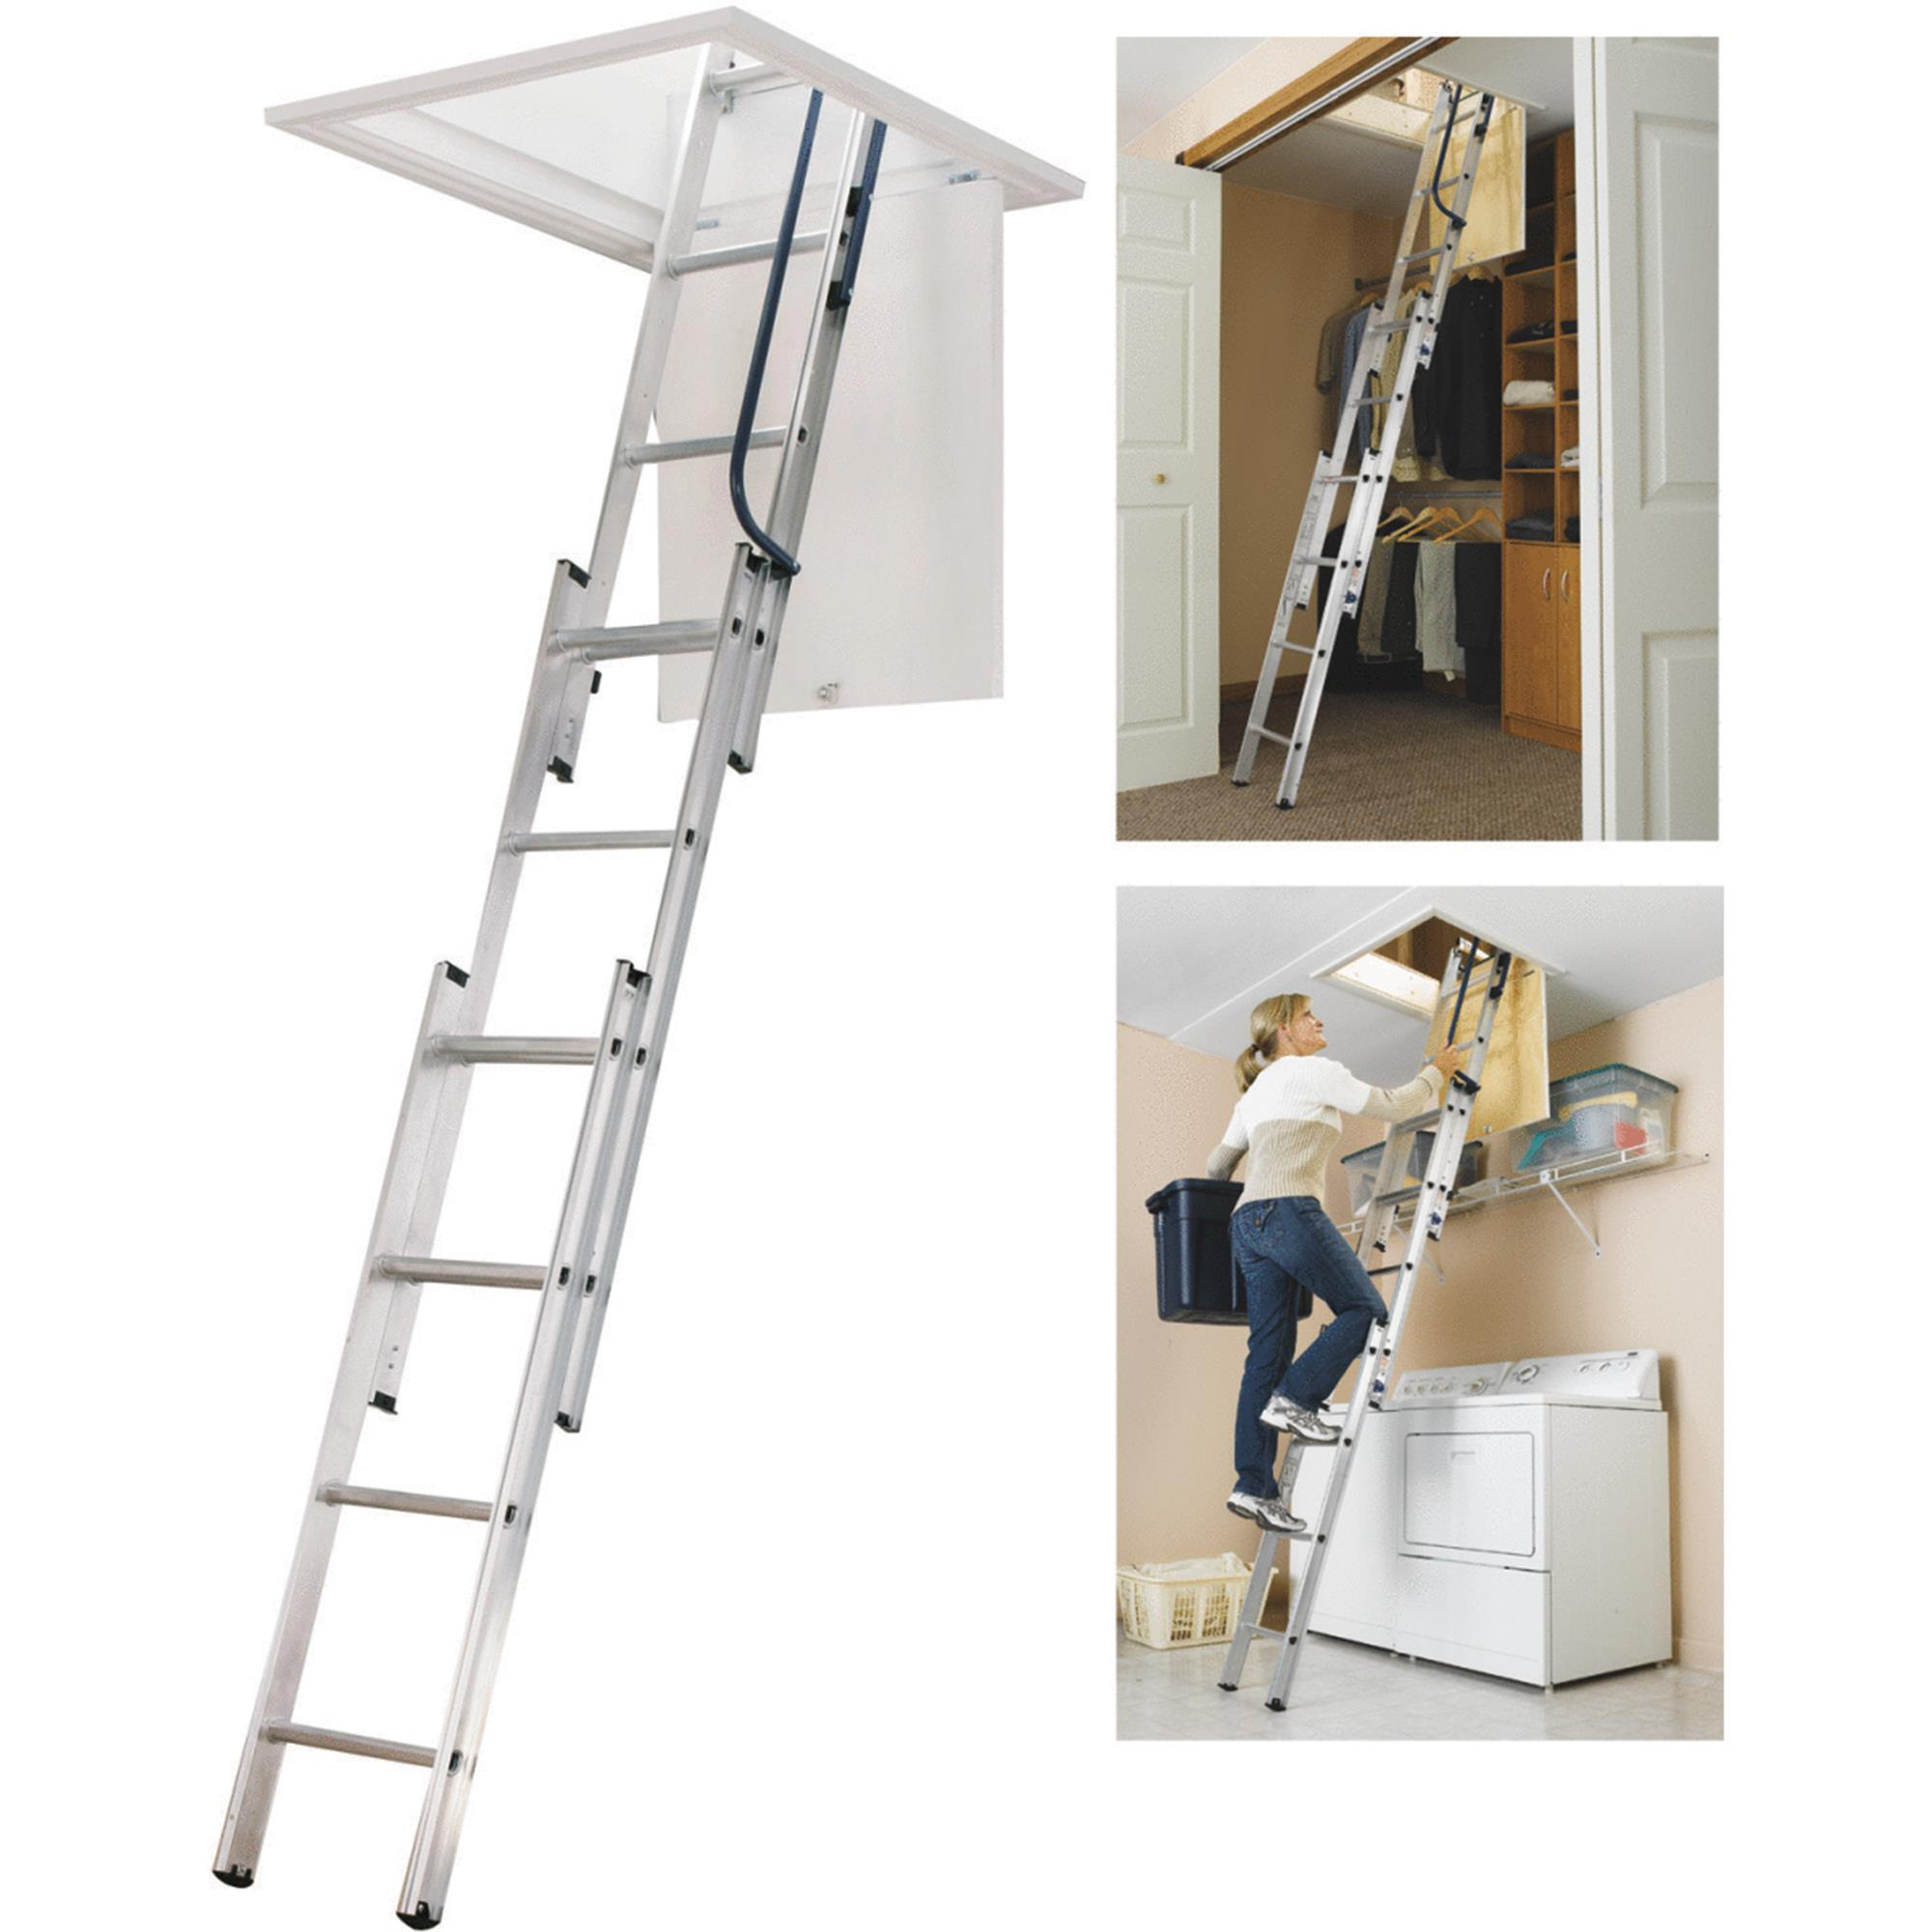 Werner AA1510 7 ft. - 9 ft. Compact Attic Ladder (24 in. x 18 in. Opening)